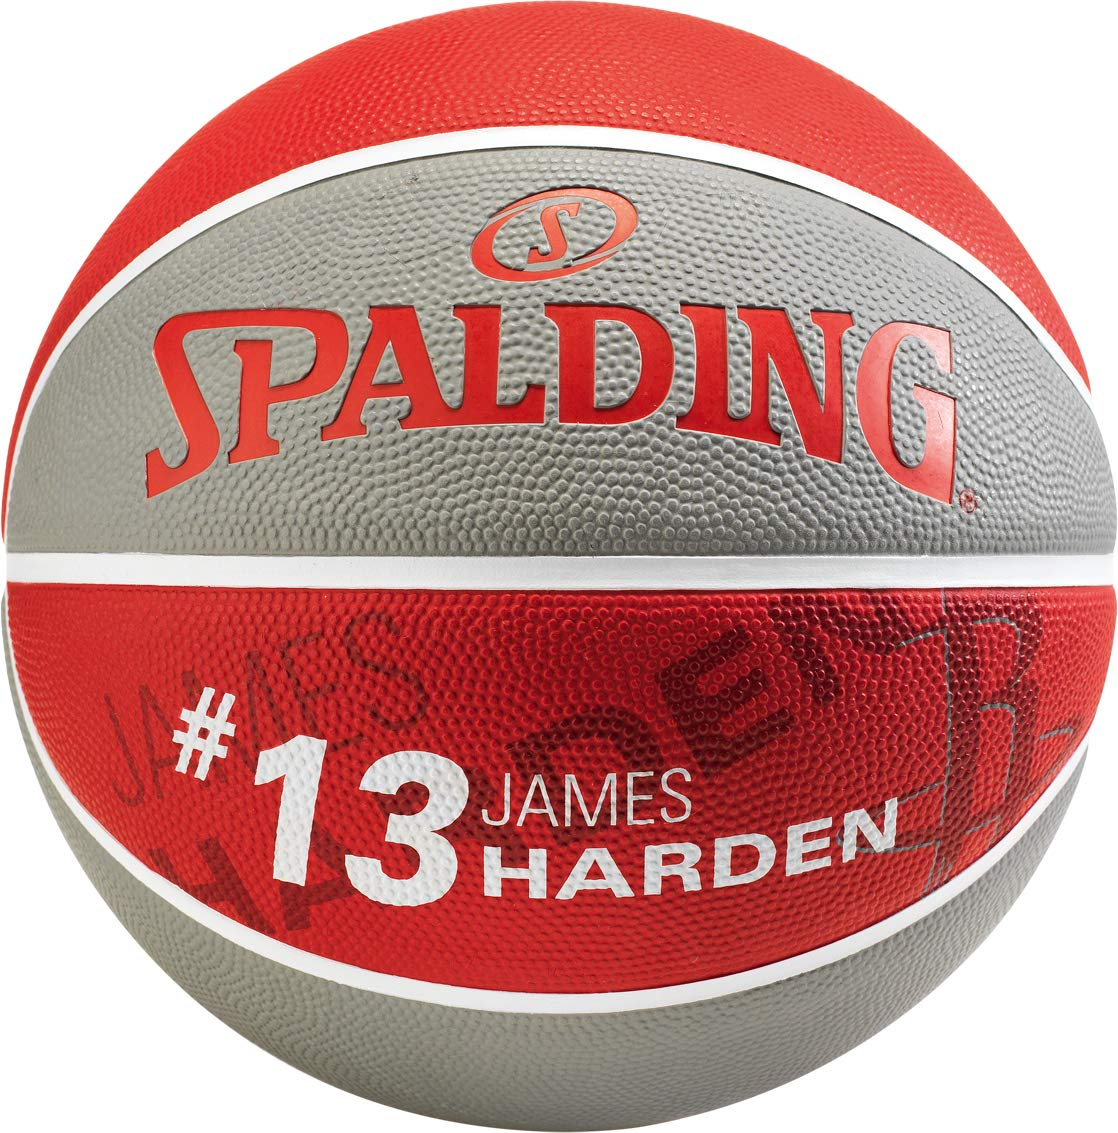 Spalding NBA Player James Harden SZ.7 (83-845Z) Basketballs ...